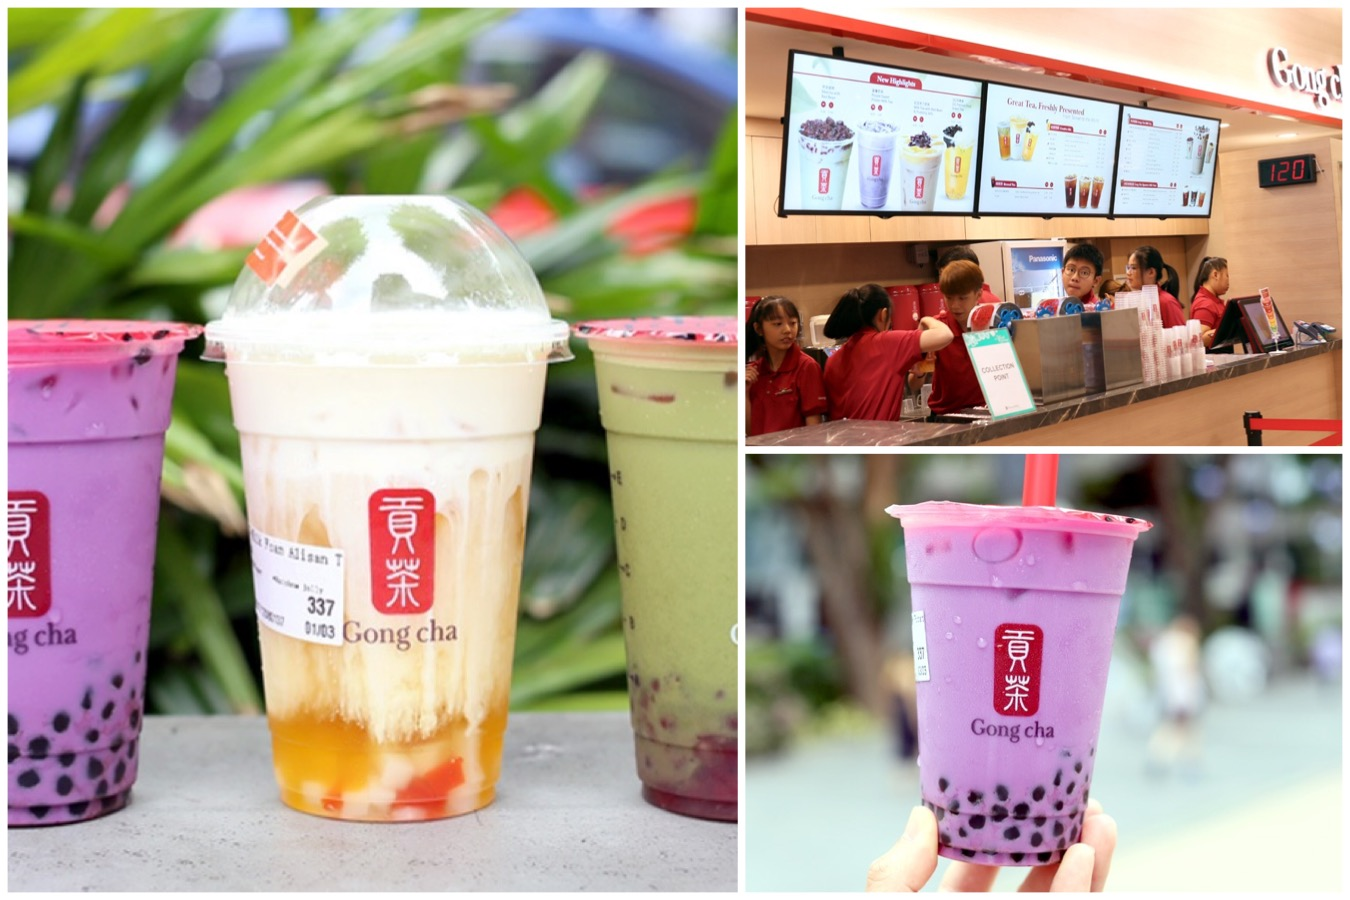 Gong Cha Classic - Takashimaya Branch Serves Up 22 Of GC's Most Popular Drinks